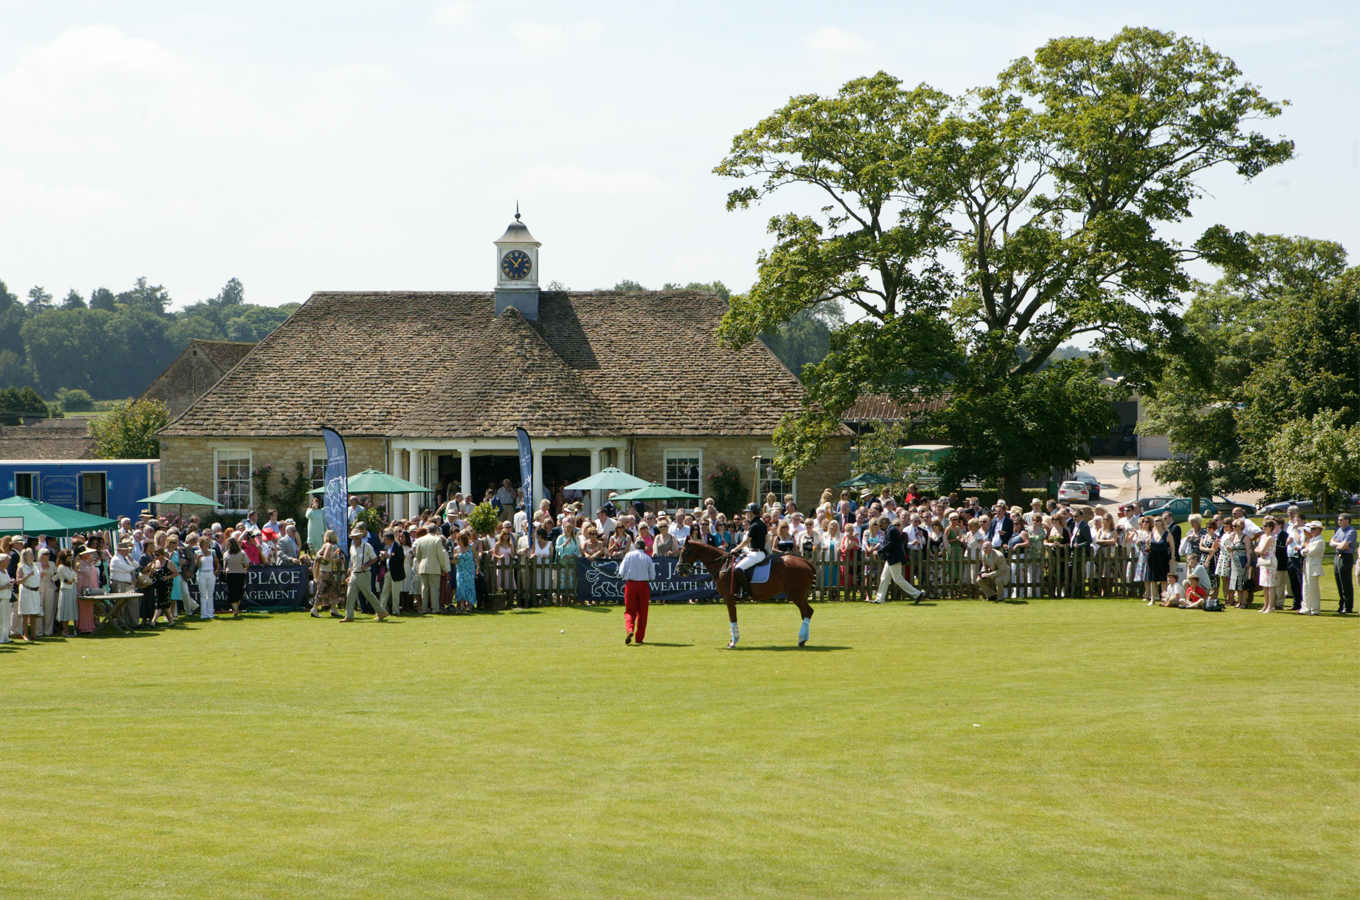 THE BEAUFORT POLO CLUB